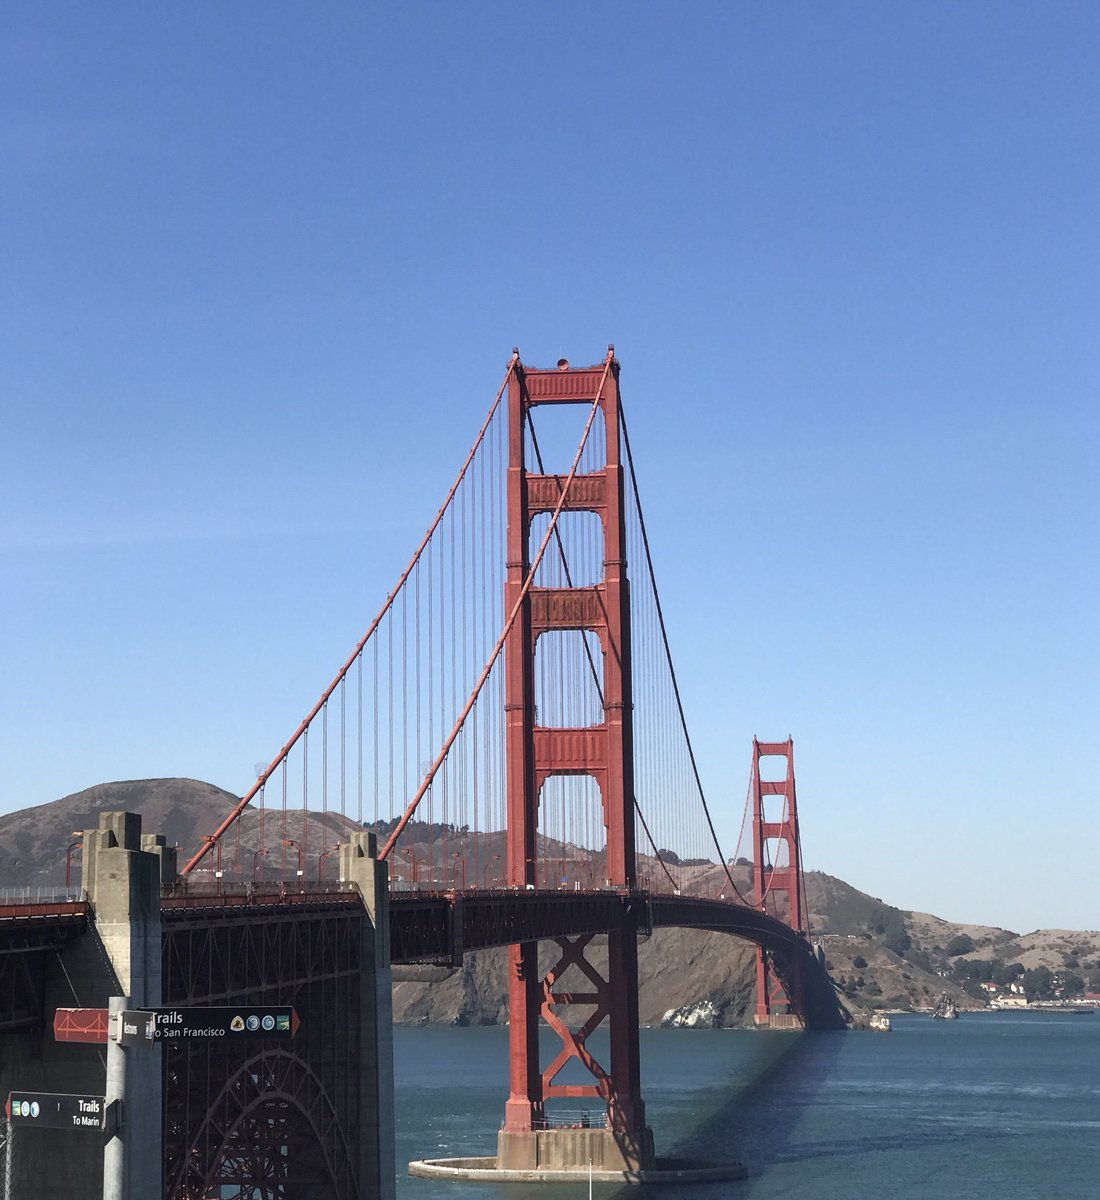 Either side of the #goldengatebridge today in #SanFrancisco <br>http://pic.twitter.com/YCM9CD7o6V